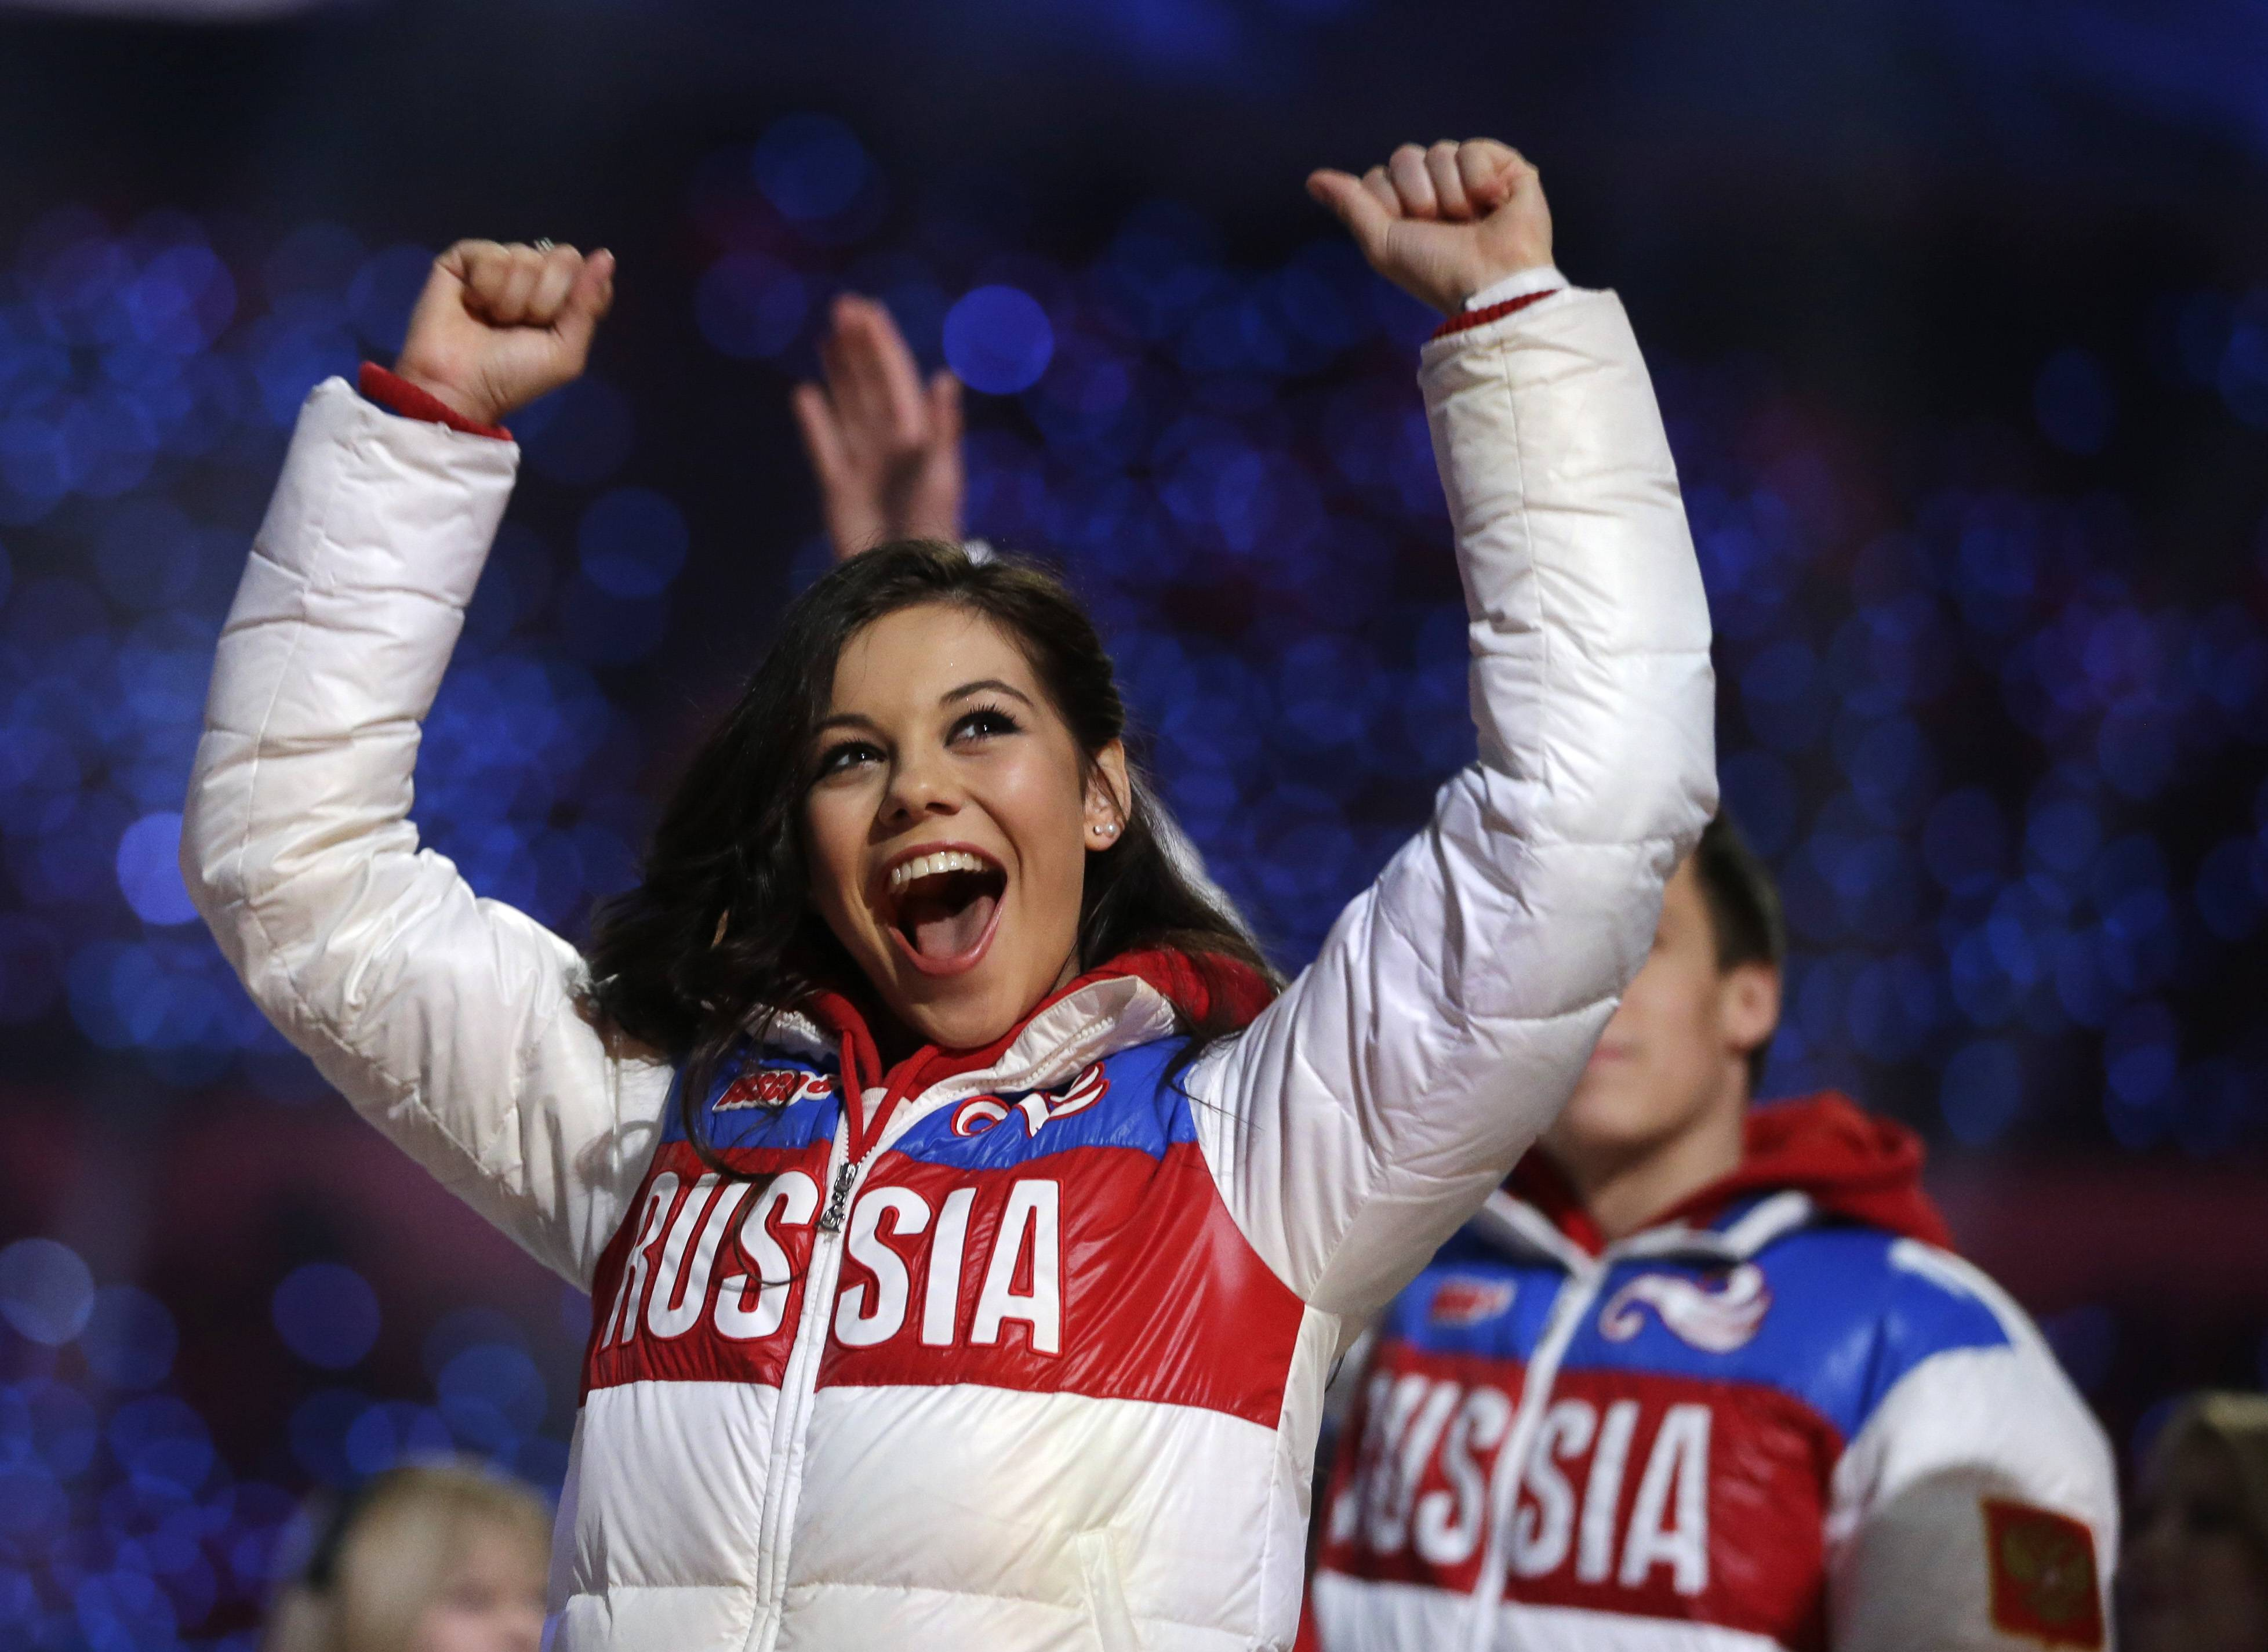 Russian figure skater Adelina Sotnikova waves to spectators during the closing ceremony of the 2014 Winter Olympics, Sunday, Feb. 23, 2014, in Sochi, Russia.